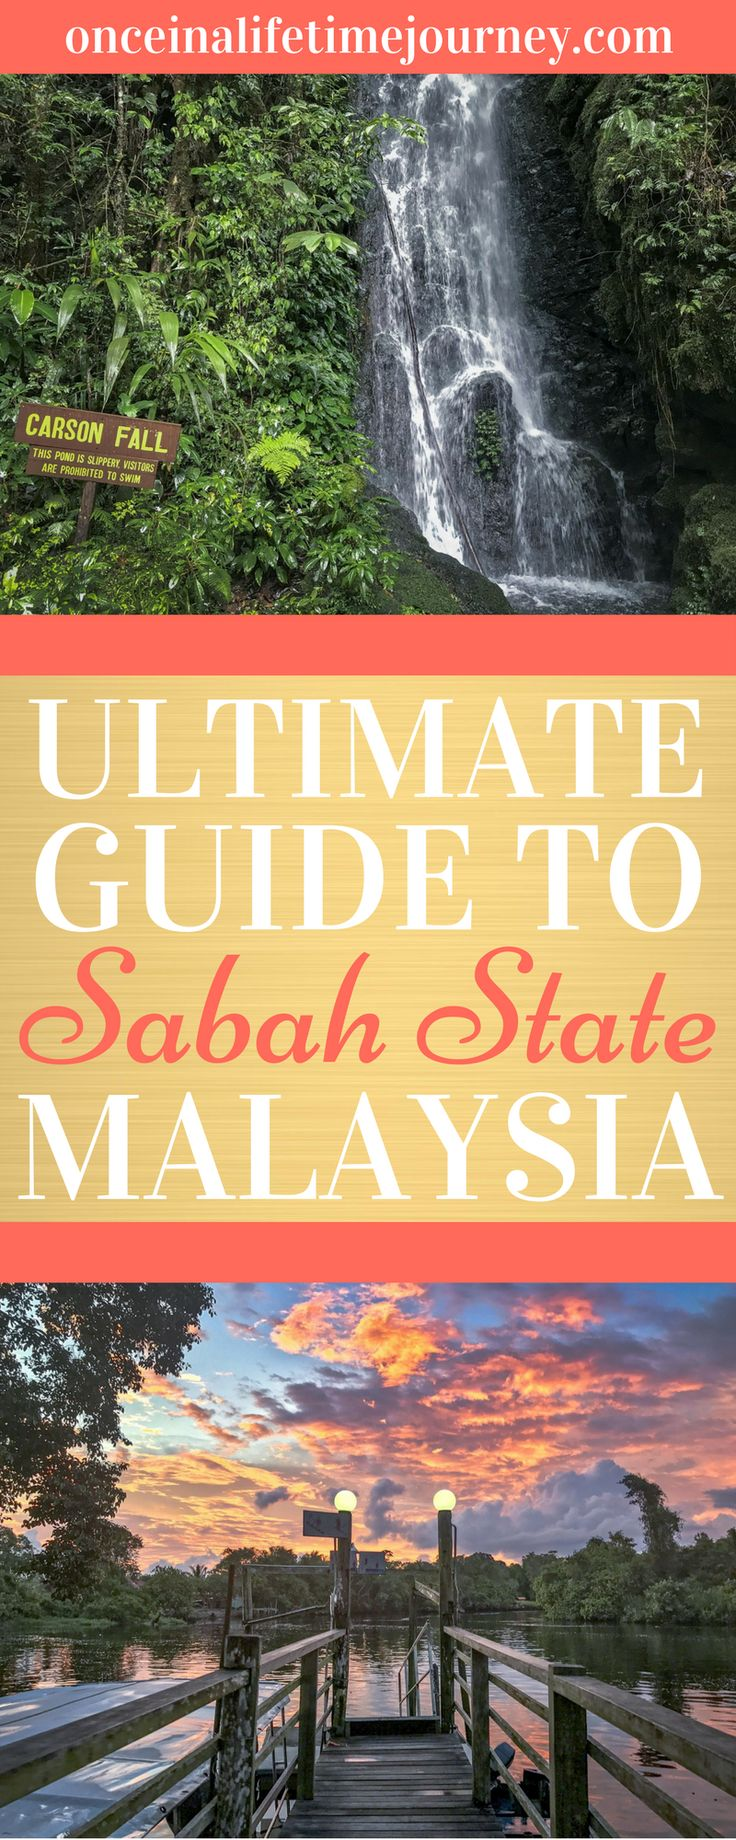 As an expat living in Singapore, I'm constantly trying to find new places that are close by so that I can escape for a relaxing weekend, and Sabah State in Malaysia fit the bill perfectly. Click through to read my ultimate guide to Sabah State in Malaysian Borneo, including Kota Kinabalu and Kinabalu Park. | Once in a Lifetime Journey #malaysia #borneo #travelguide #kotakinabalu